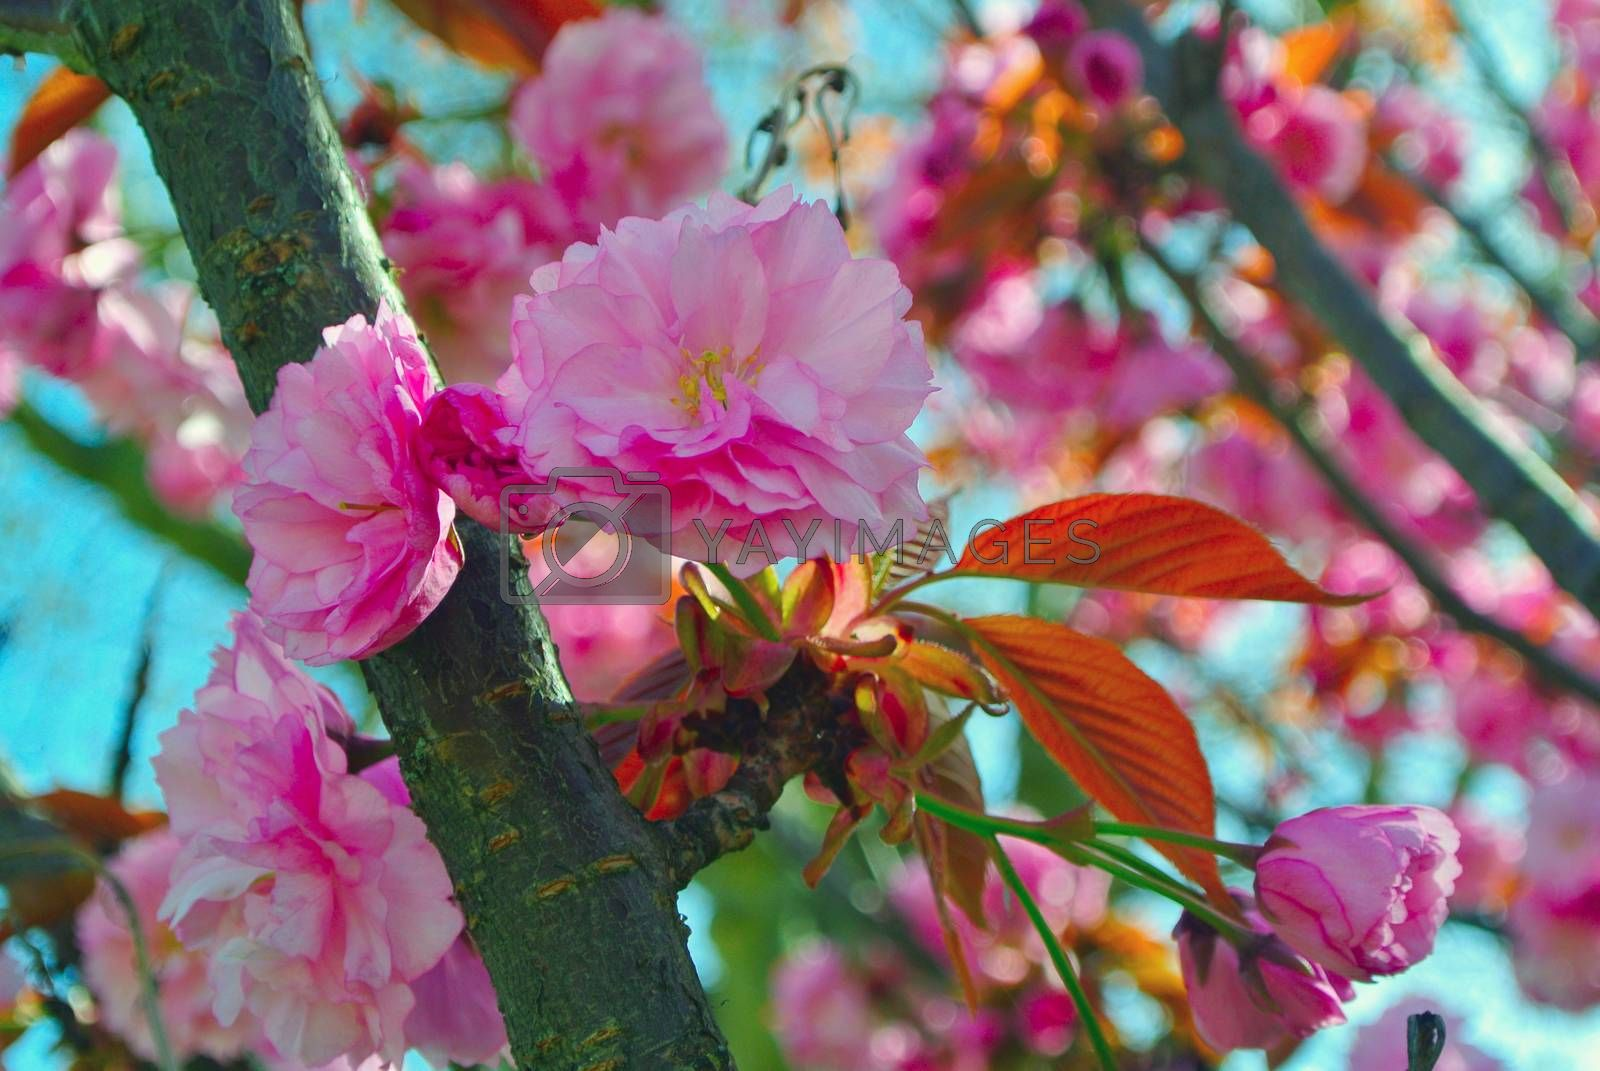 Royalty free image of Peach flowers by Koufax73